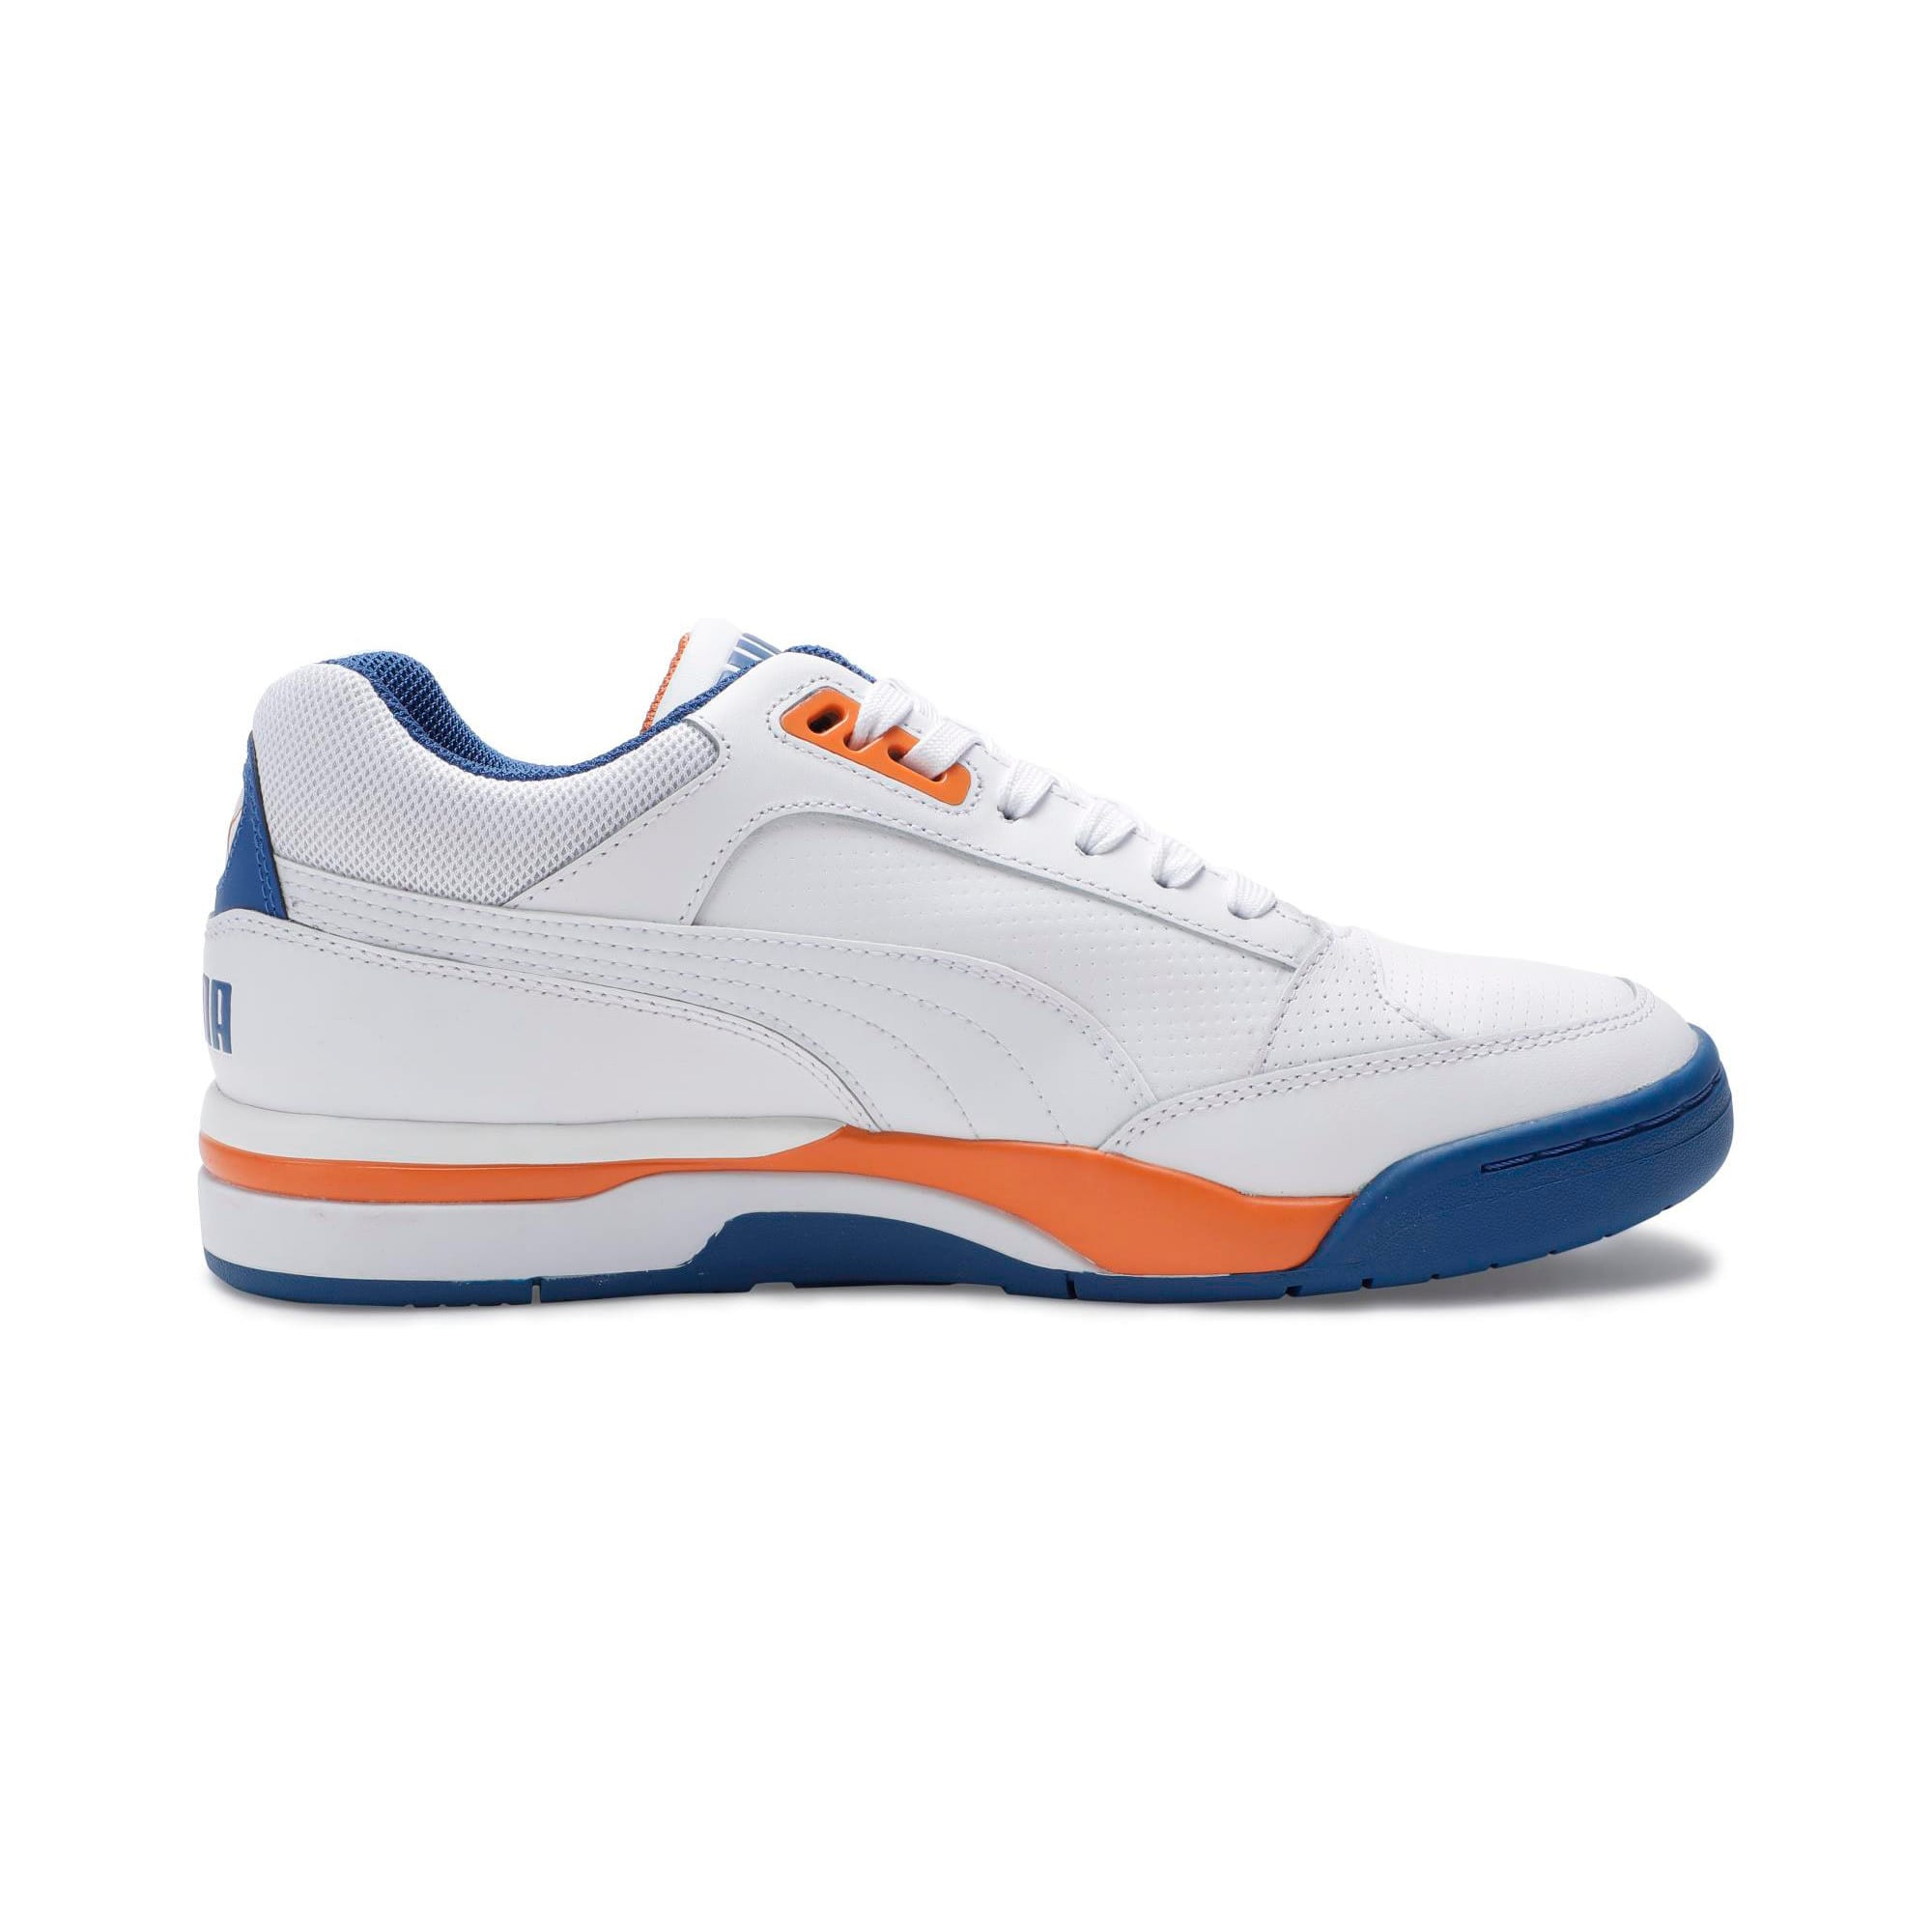 Thumbnail 5 of Palace Guard Men's Basketball Trainers, P White-Jaffa Orange-G Blue, medium-IND